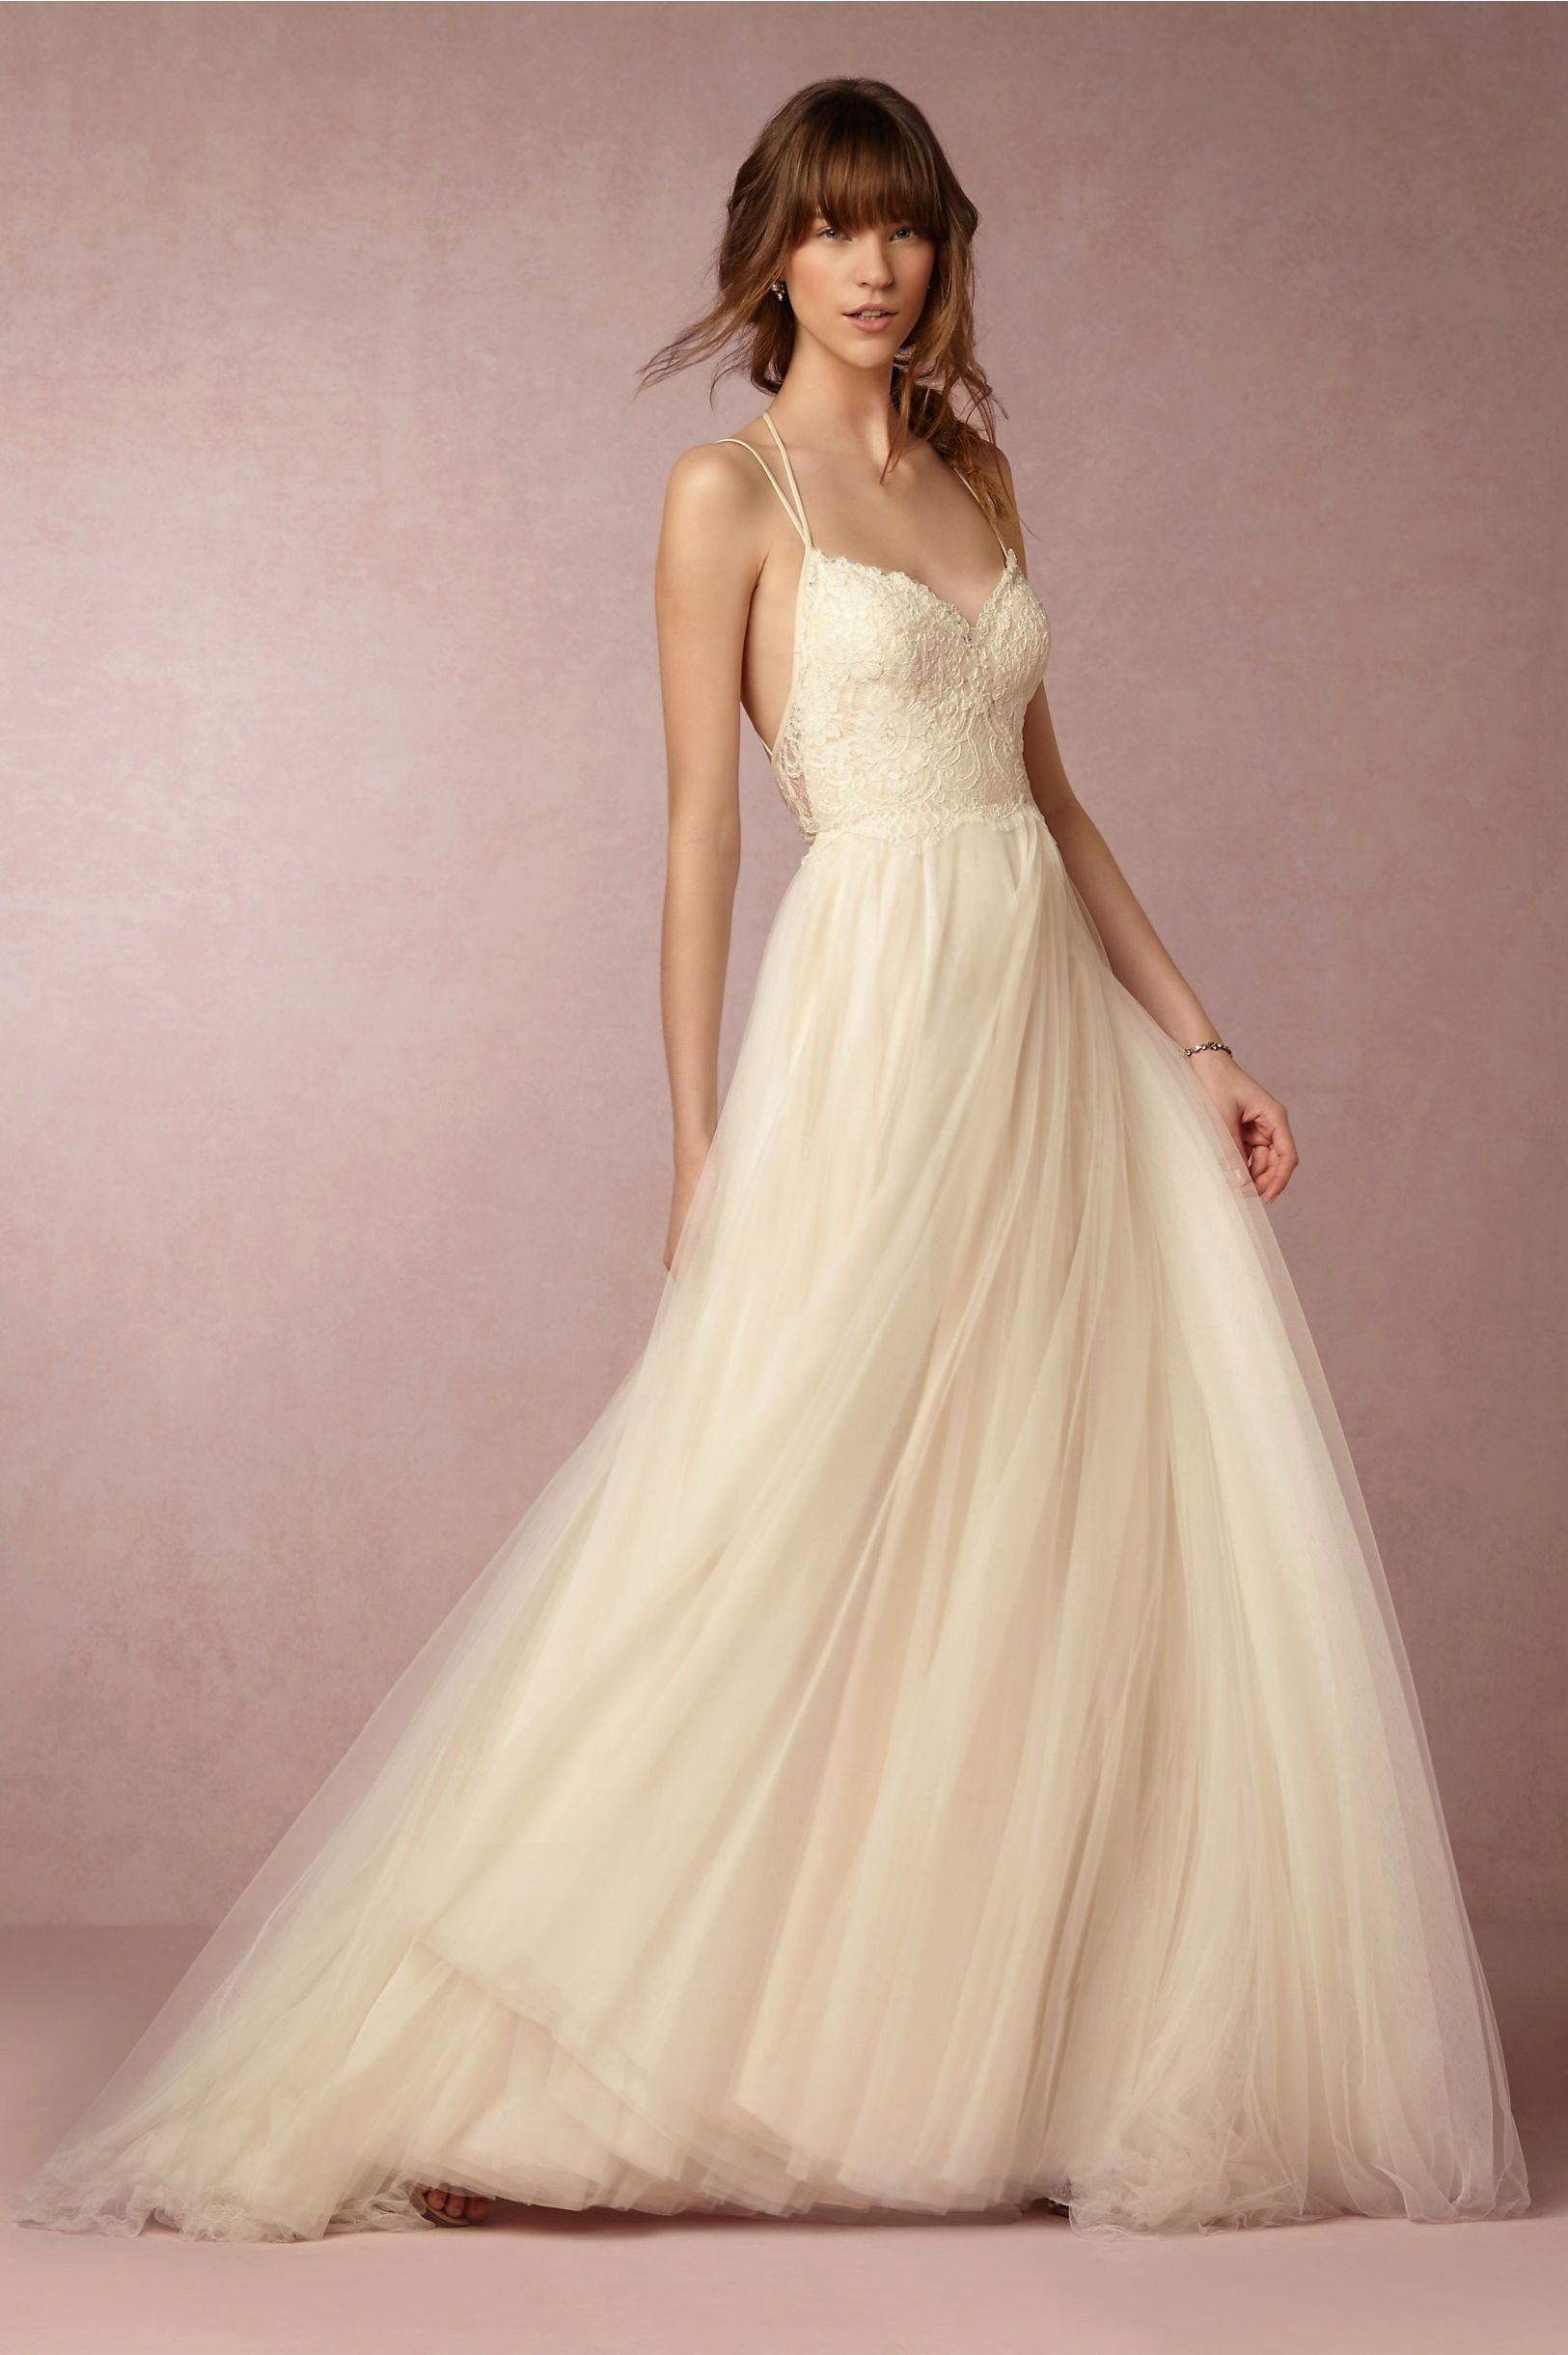 70 Wedding Dress For Pregnant Brides Ideas All About Weddings